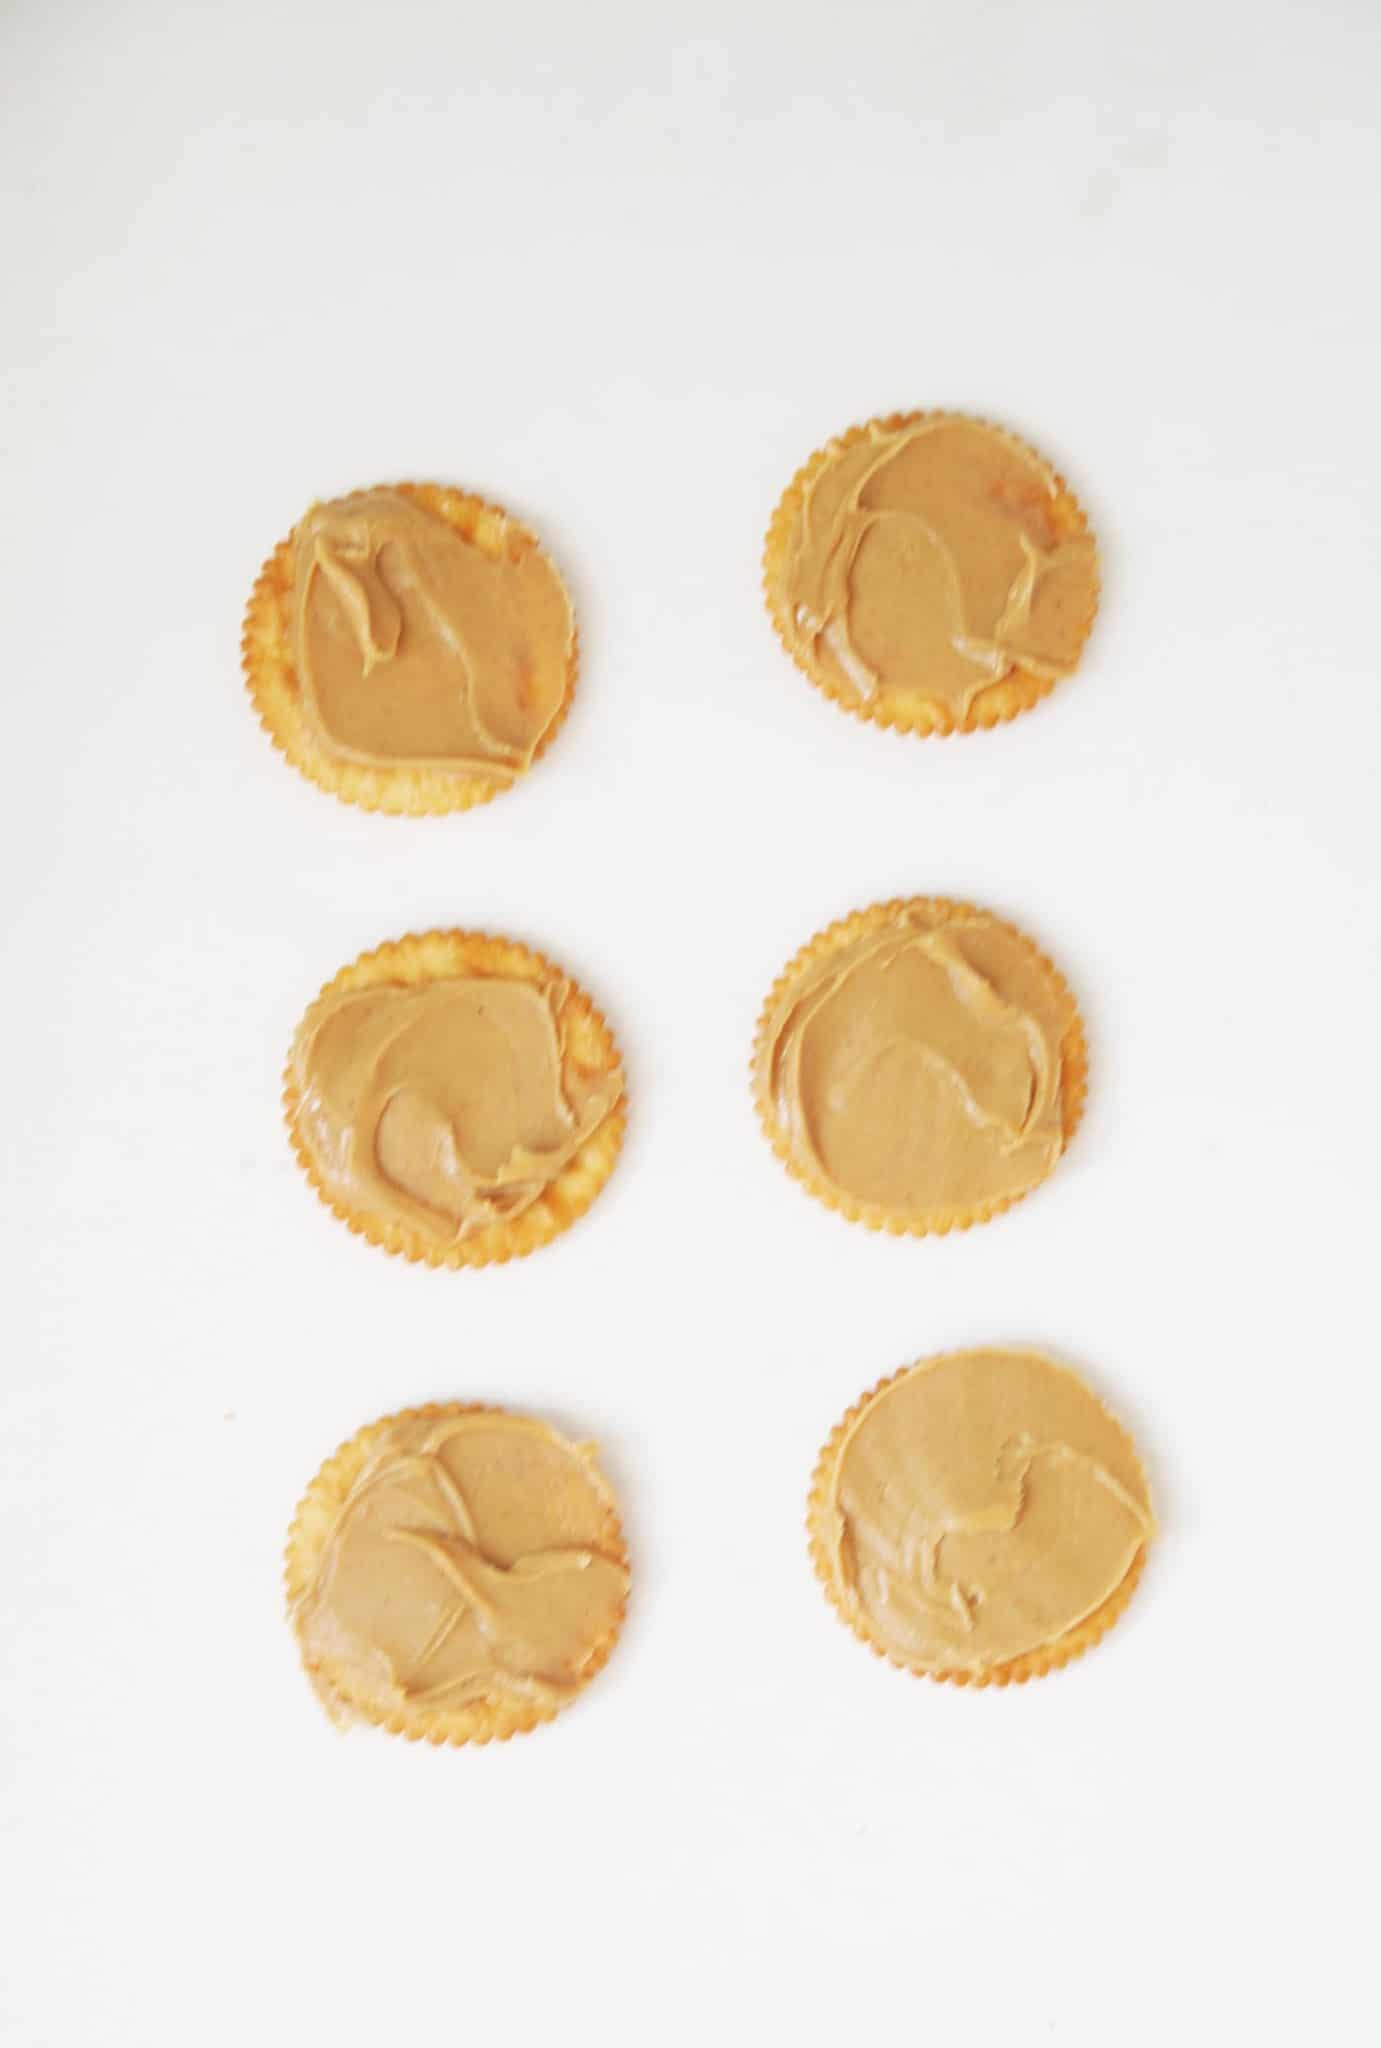 Peanut butter on top of crackers